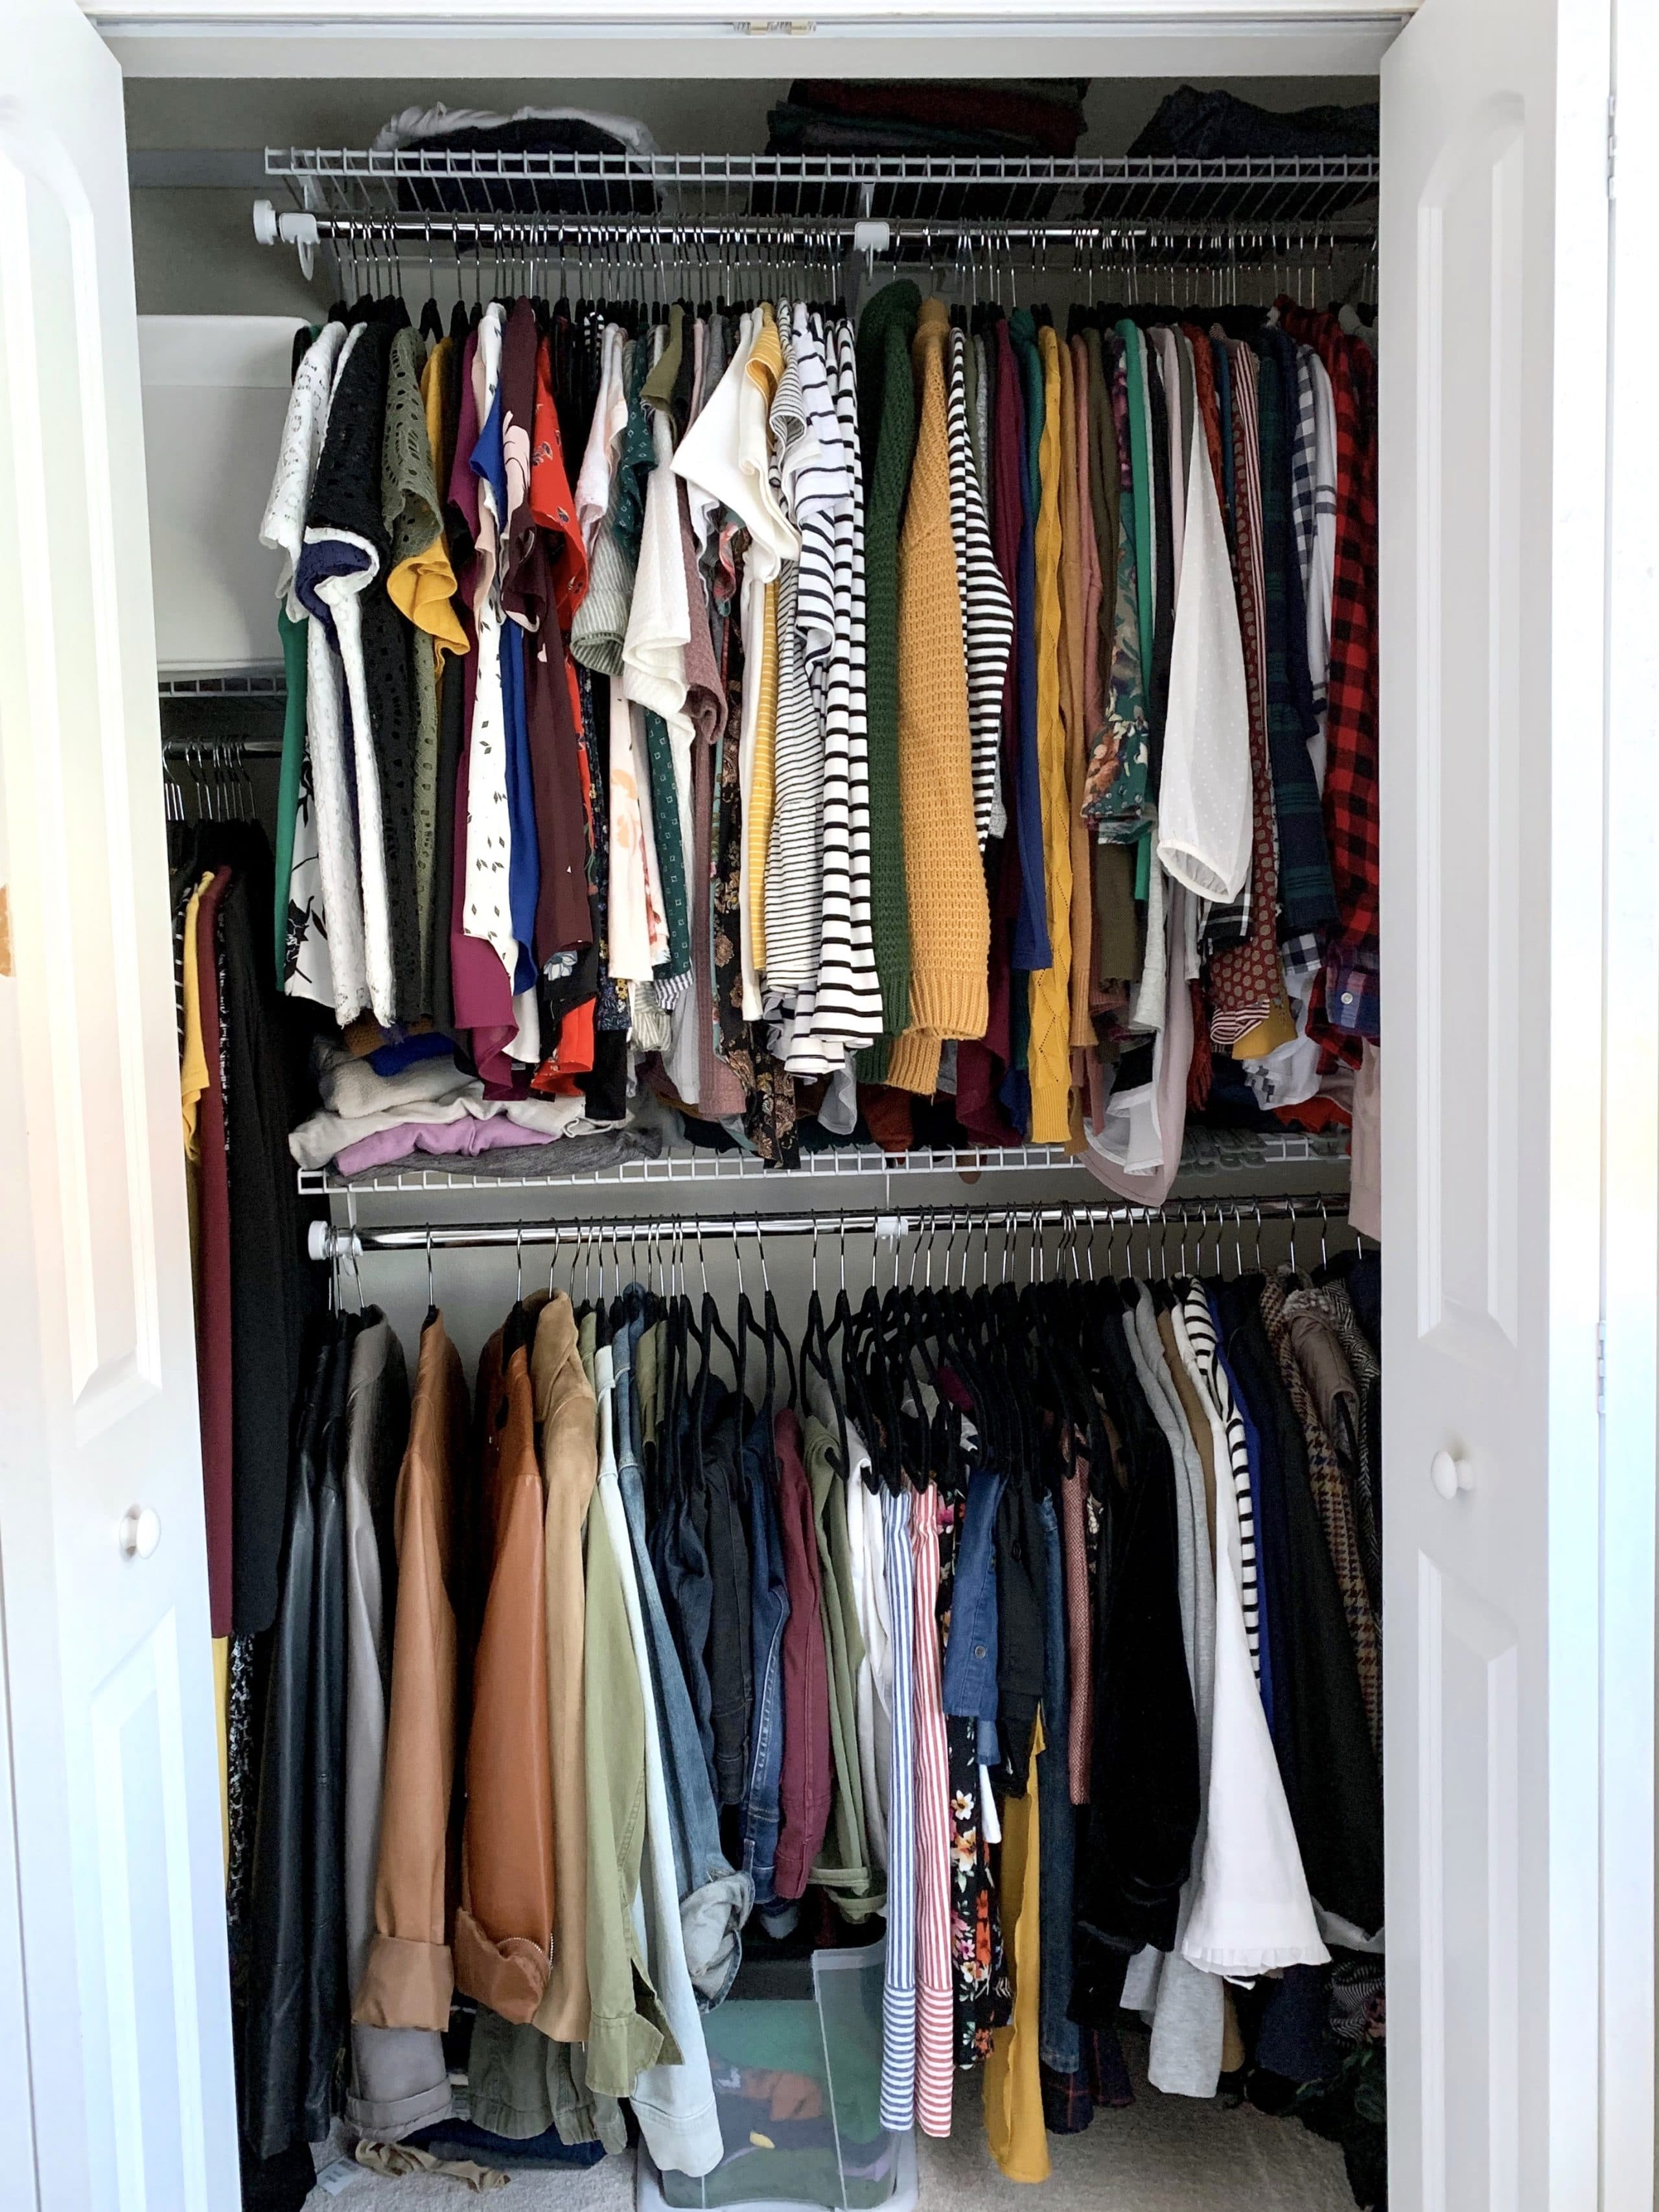 Closet Organization System with Racks and Shelves